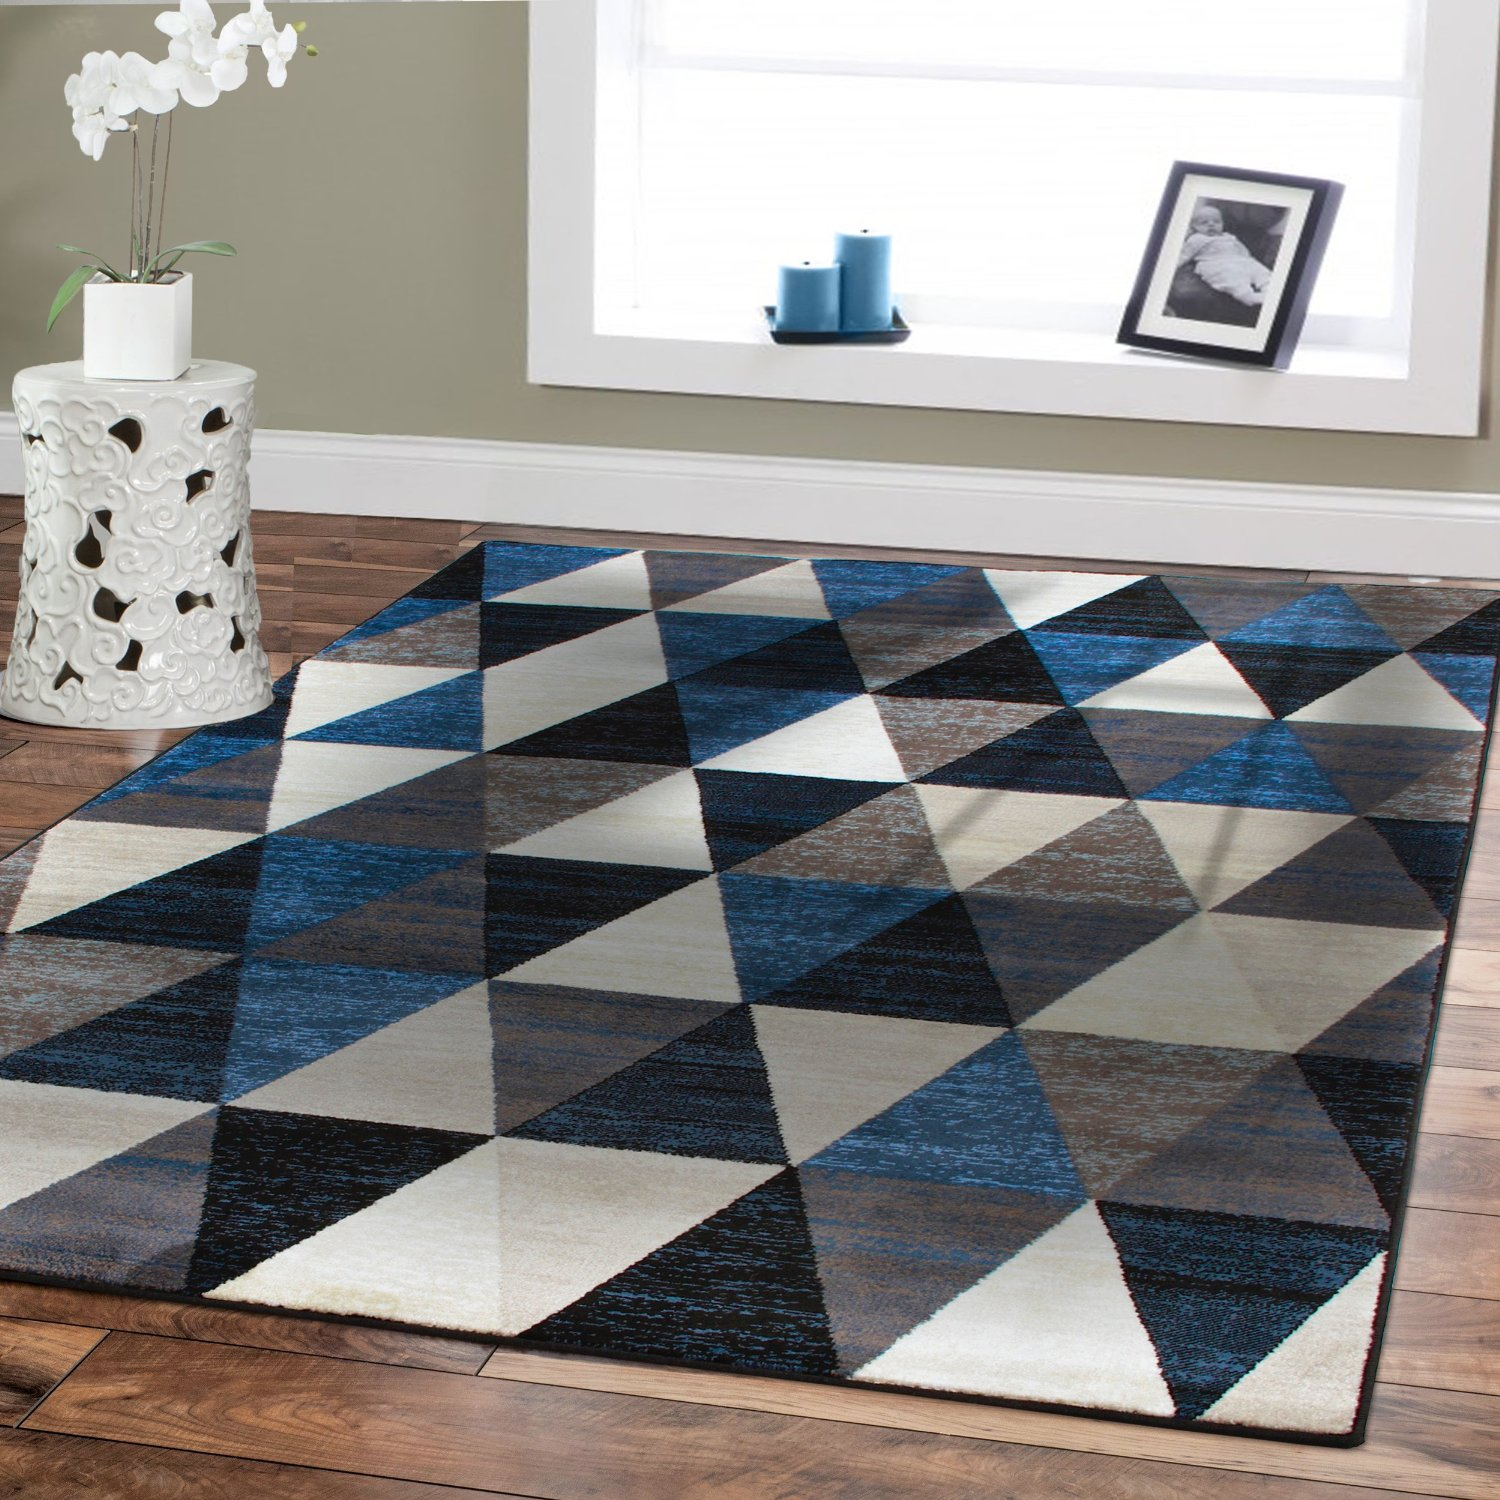 Huge Rugs For Living Room Cheap 8x10 Modern Area Rugs Find 8x10 Modern Area Rugs Deals On